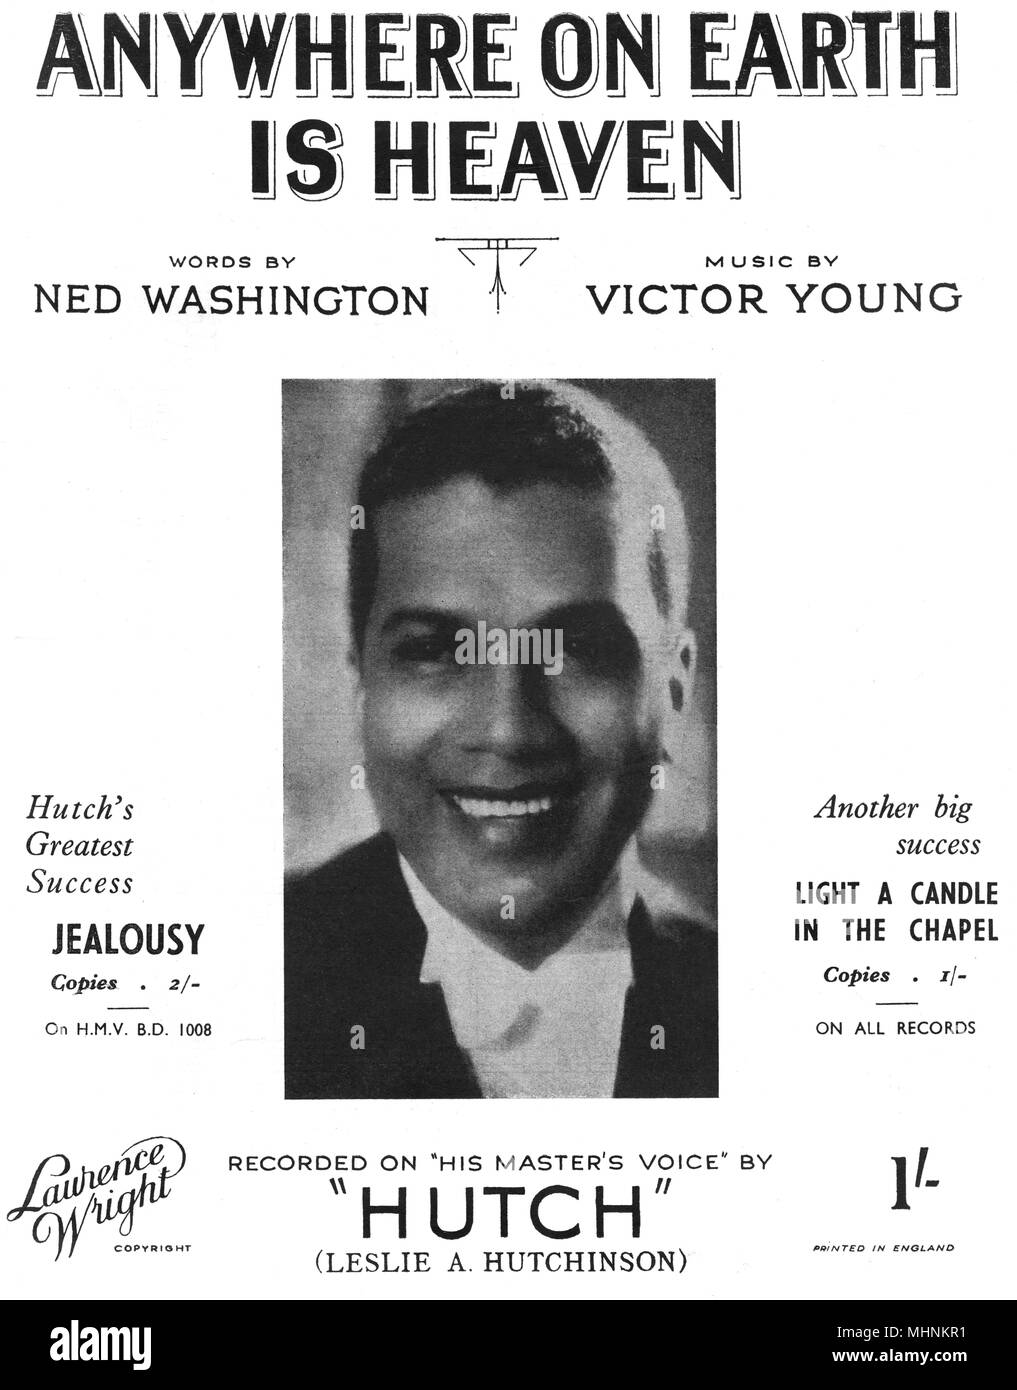 'Anywhere on earth is heaven', words by Ned Washington, music by Victor Young, recorded on his master's voice by 'Hutch' (Leslie A. Hutchinson) - Music Sheet Cover, a photo of Leslie A. Hutchinson     Date: 20th century - Stock Image